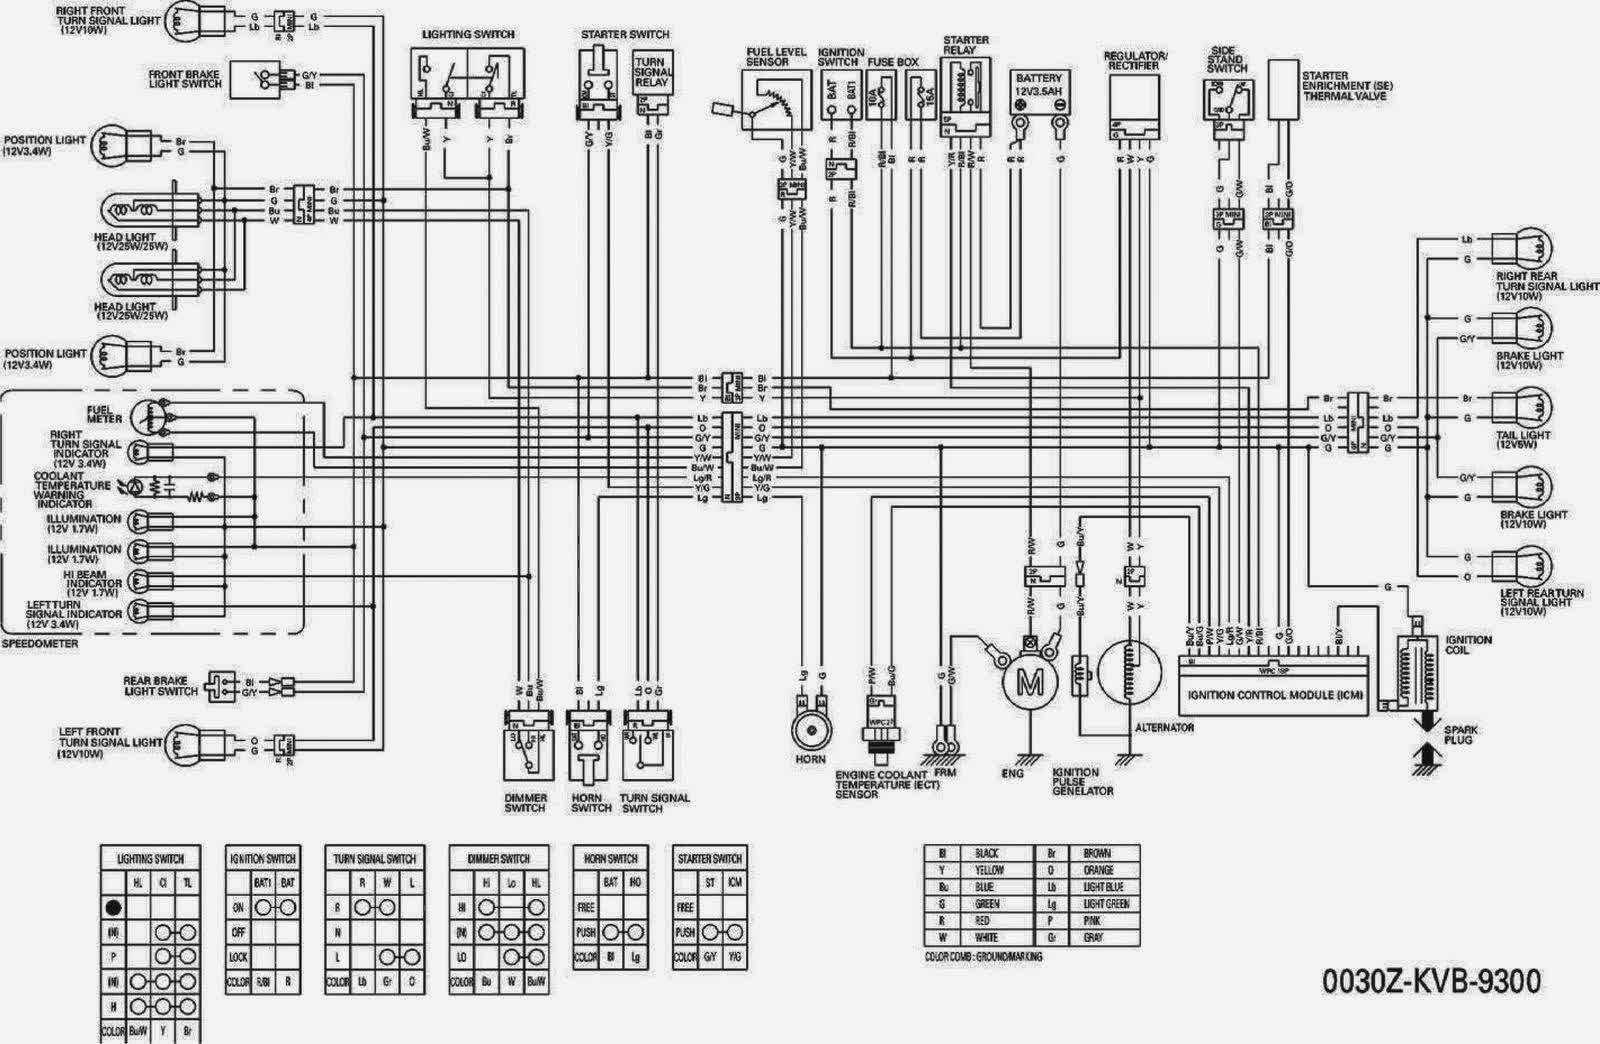 wiring diagram beat pgm fi wiring diagram 125cc xrm 125 regulator diagram honda 3013 wiring diagram structure